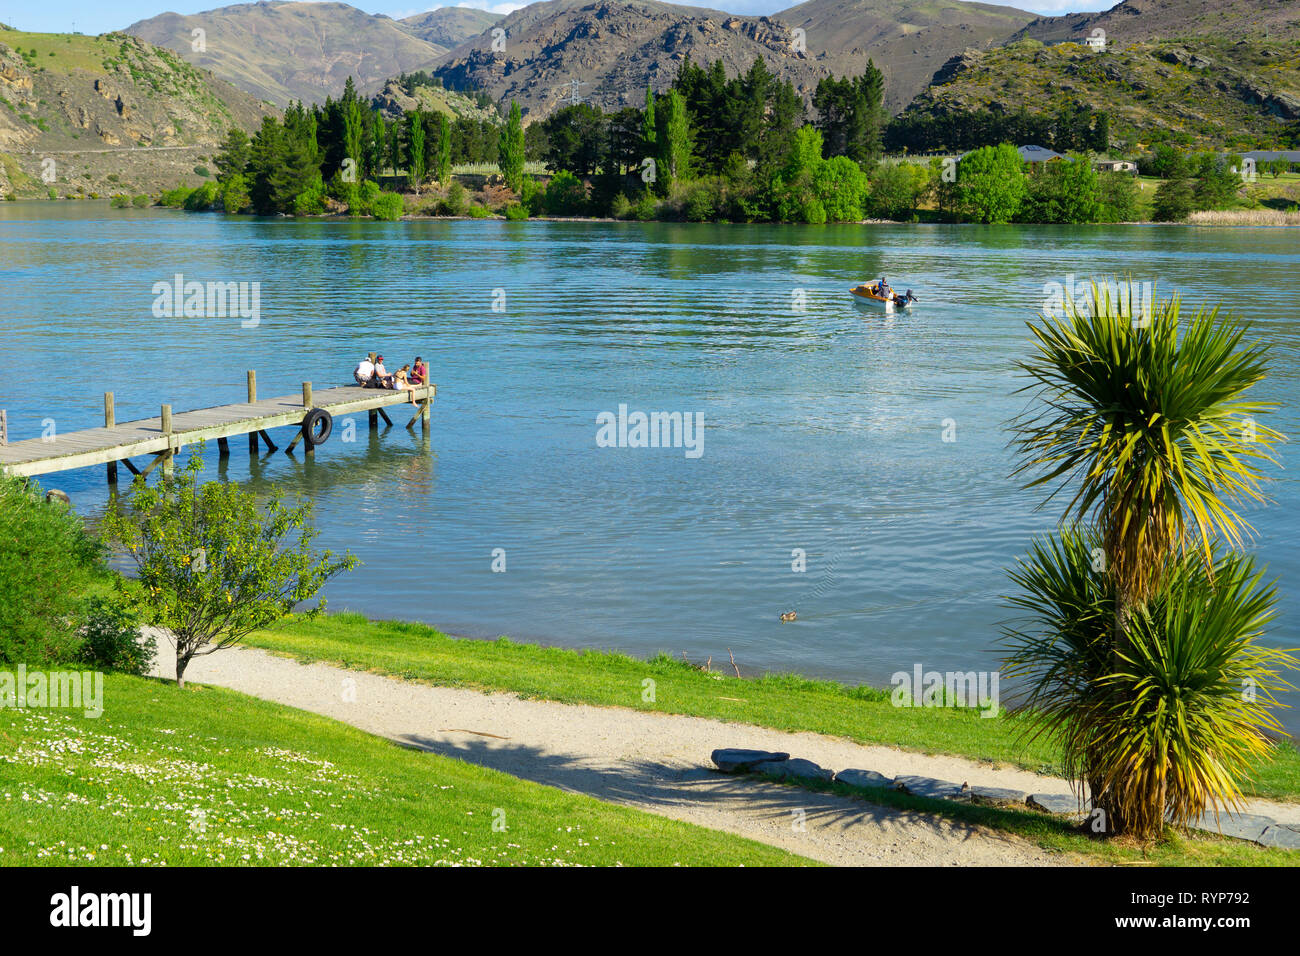 CROMWELL NEW ZEALAND - OCTOBER 21 2019; Lake Dunstan scene with young group young people sitting together on end of jetty with boat in water Cromwell  Stock Photo